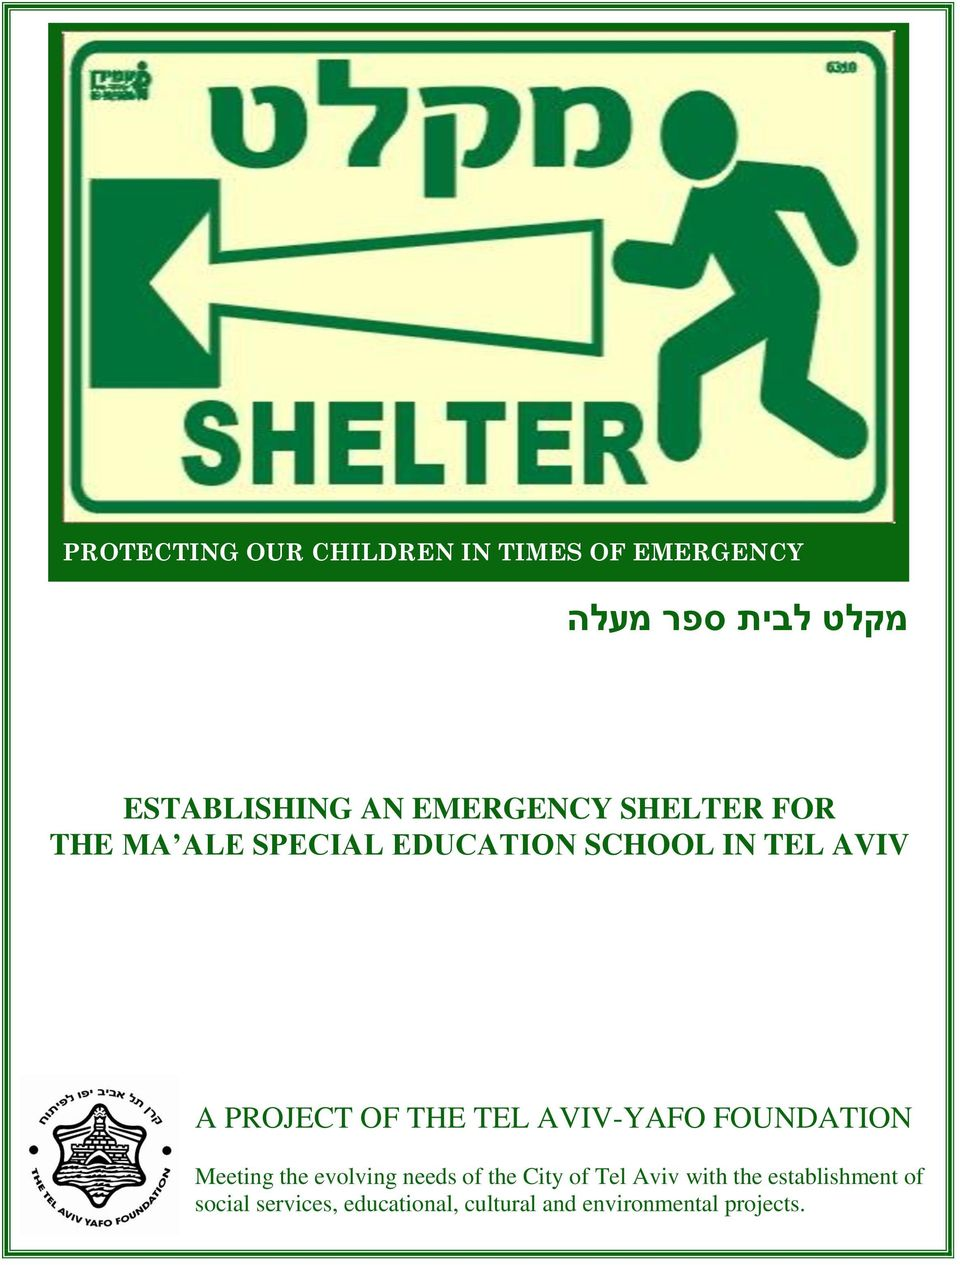 SCHOOL IN TEL AVIV A PROJECT OF THE TEL AVIV-YAFO FOUNDATION Meeting the evolving needs of the